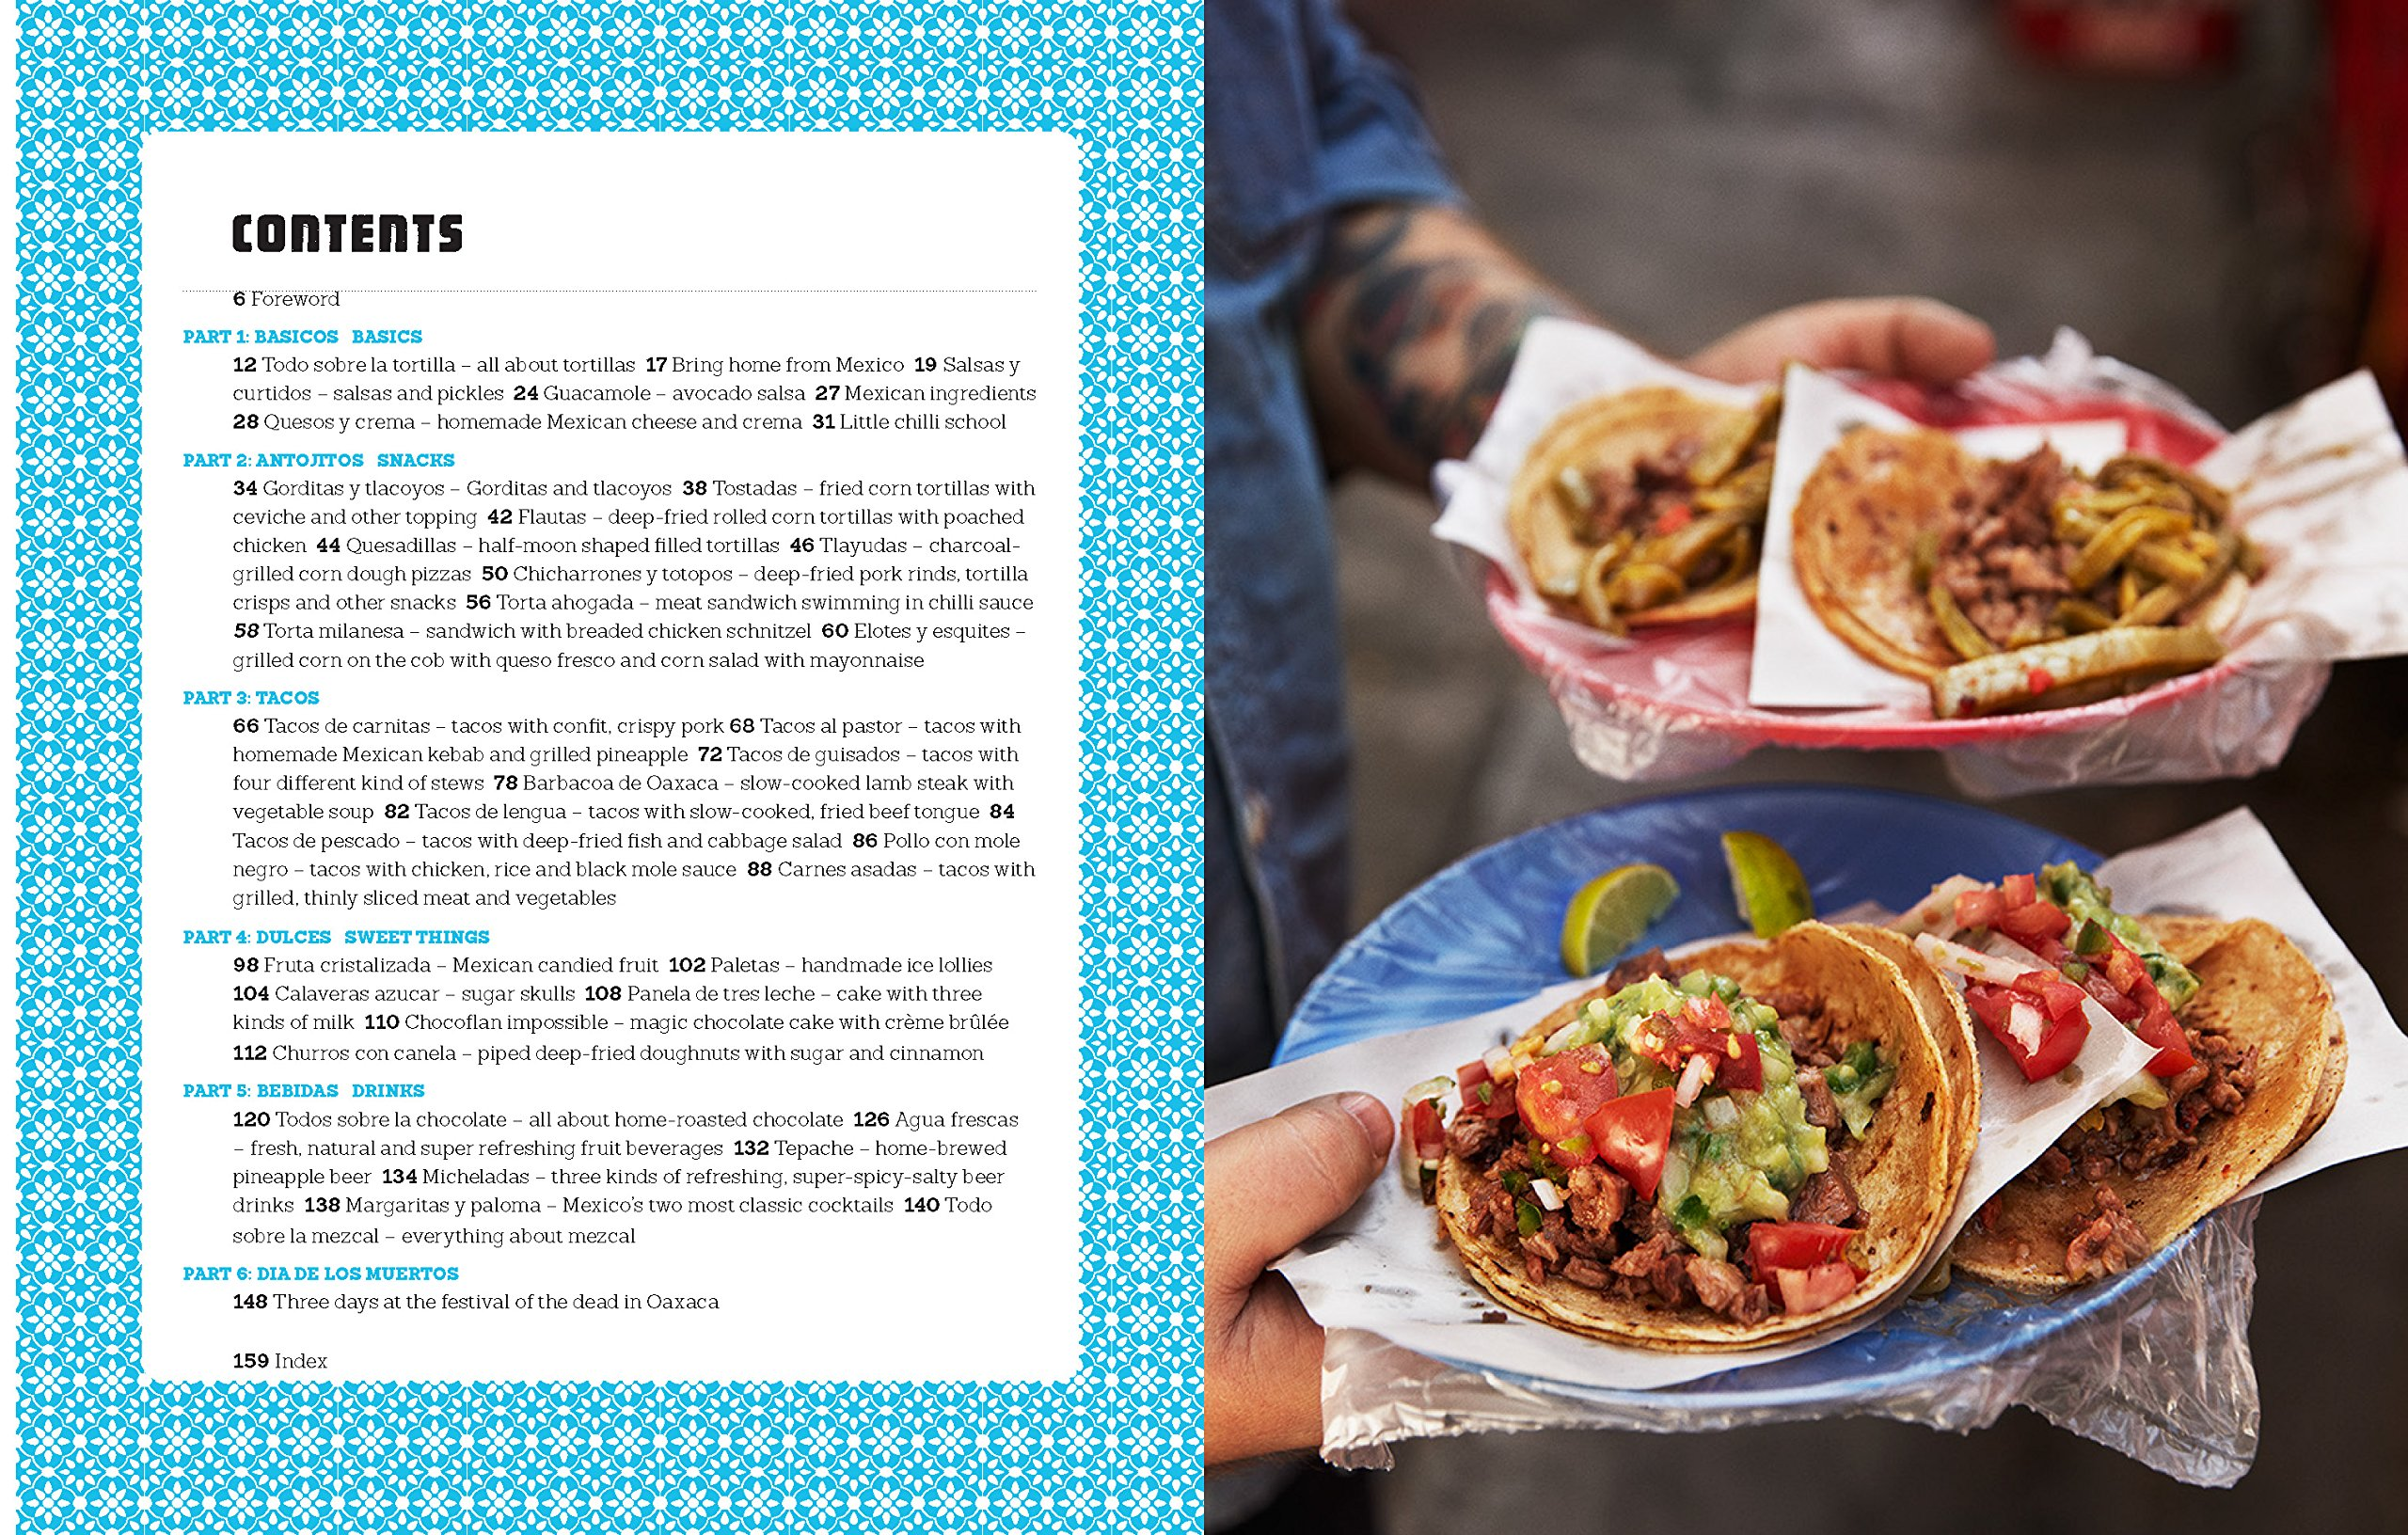 Taco loco mexican street food from scratch jonas cramby taco loco mexican street food from scratch jonas cramby 9781910904312 amazon books forumfinder Choice Image